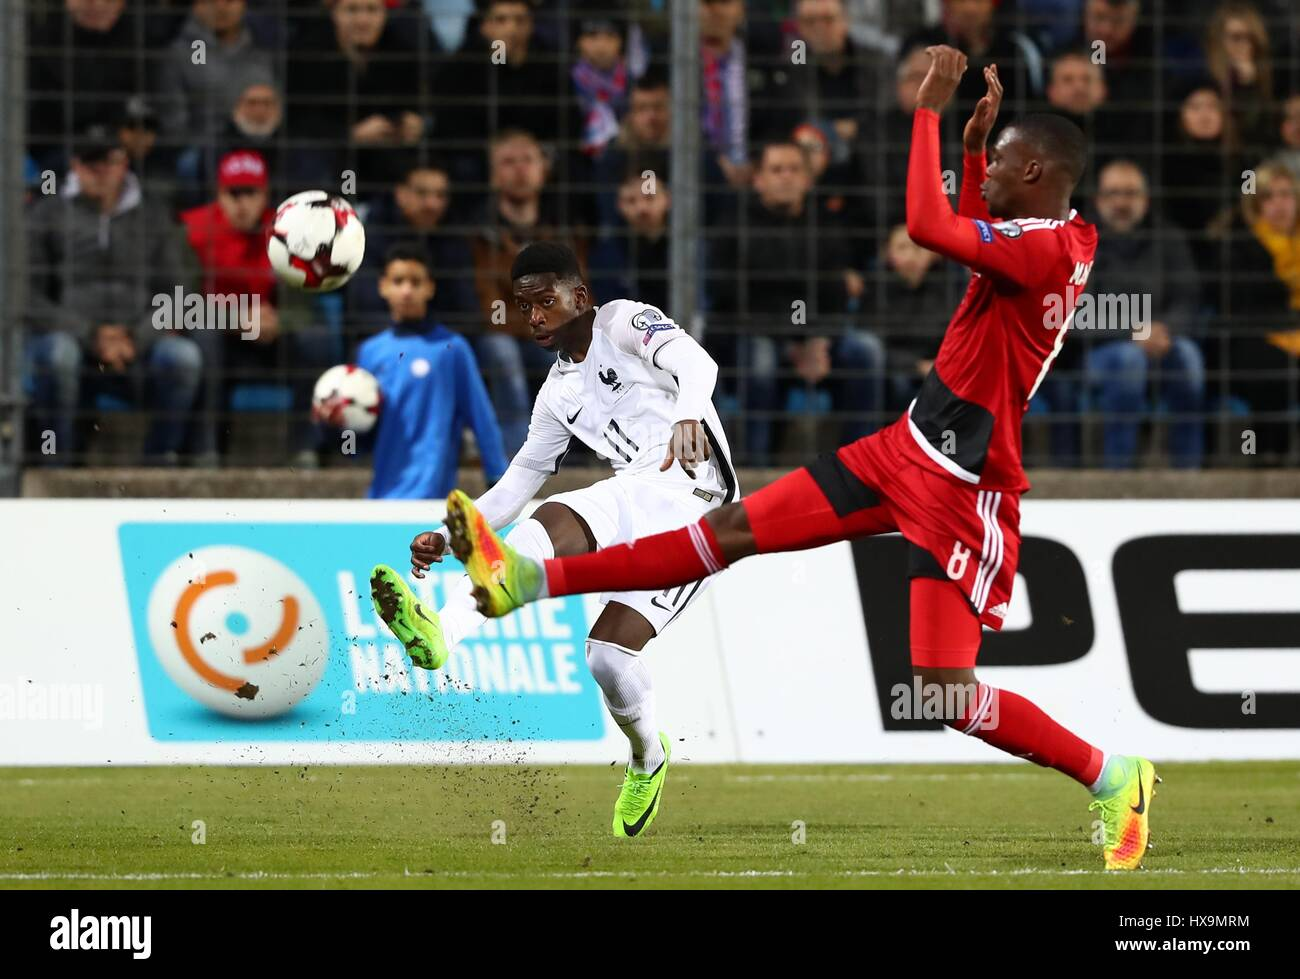 Luxembourg. 25th Mar, 2017. Ousmane Dembele (L) of France passes the ball during the FIFA World Cup 2018 qualifying - Stock Image